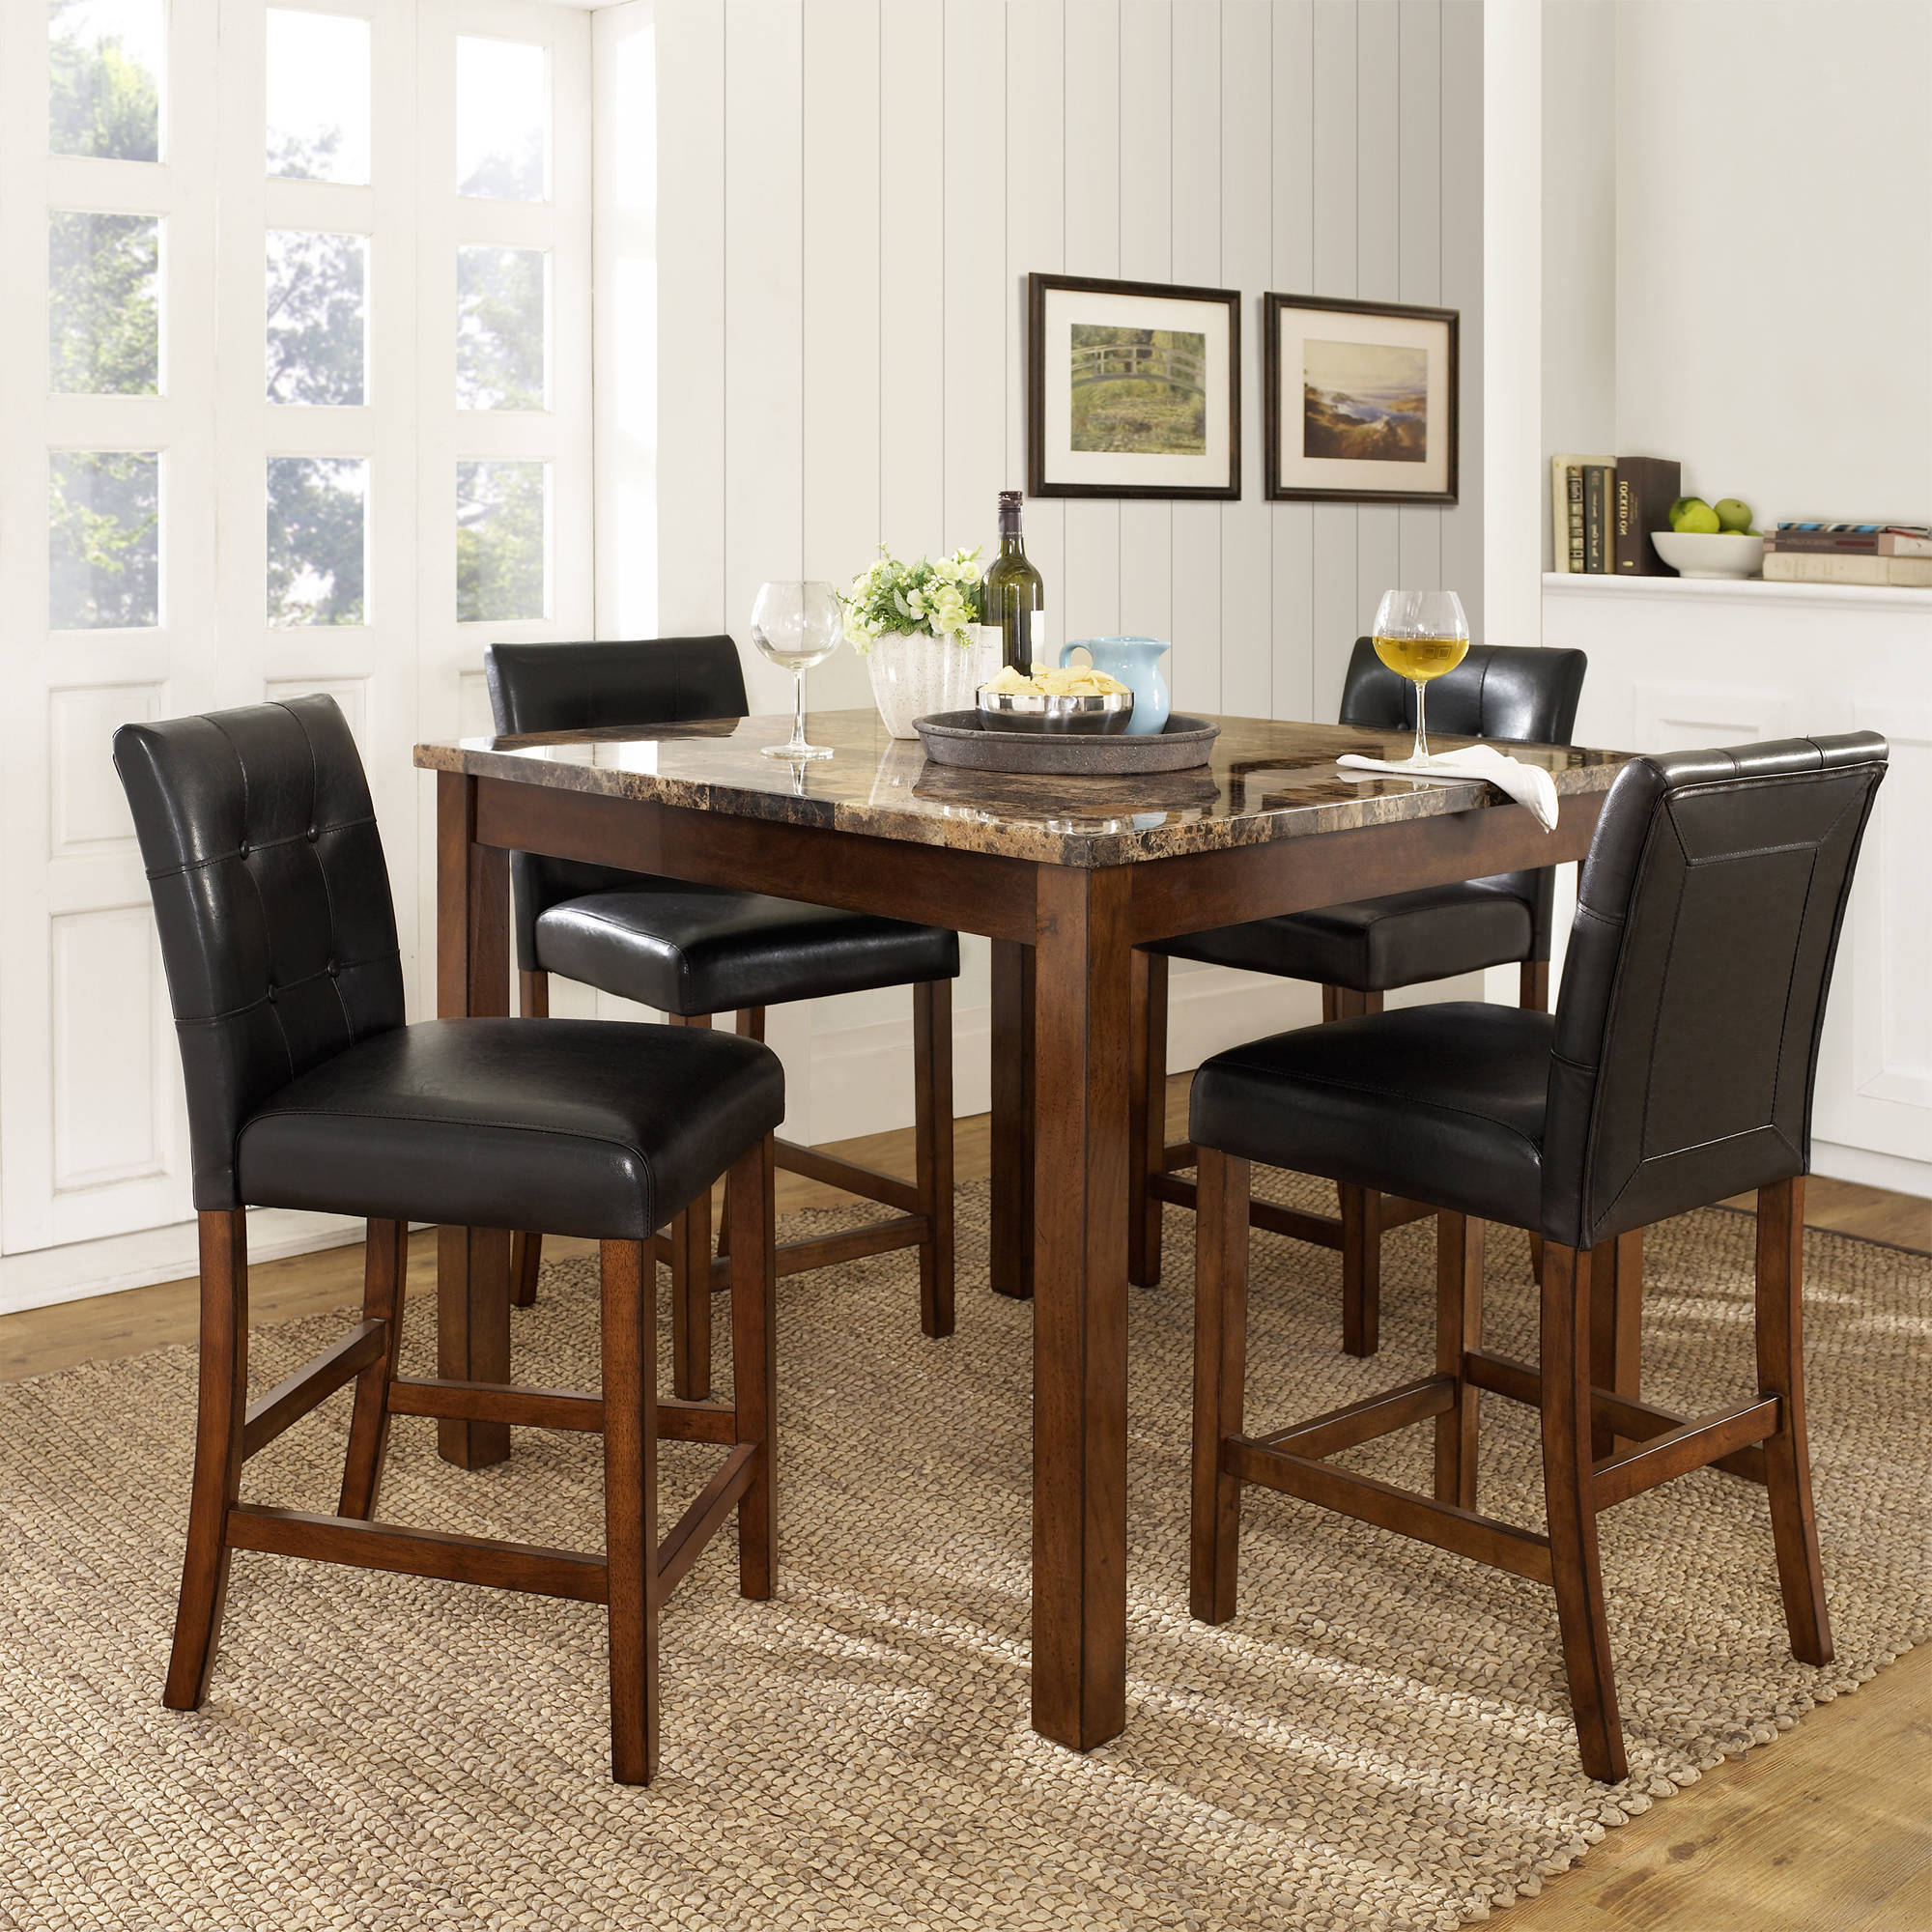 Anette 3 Piece Counter Height Dining Sets Throughout Popular 5 Piece Baxter Dining Set With Storage Ottoman, Multiple Colors (View 13 of 25)